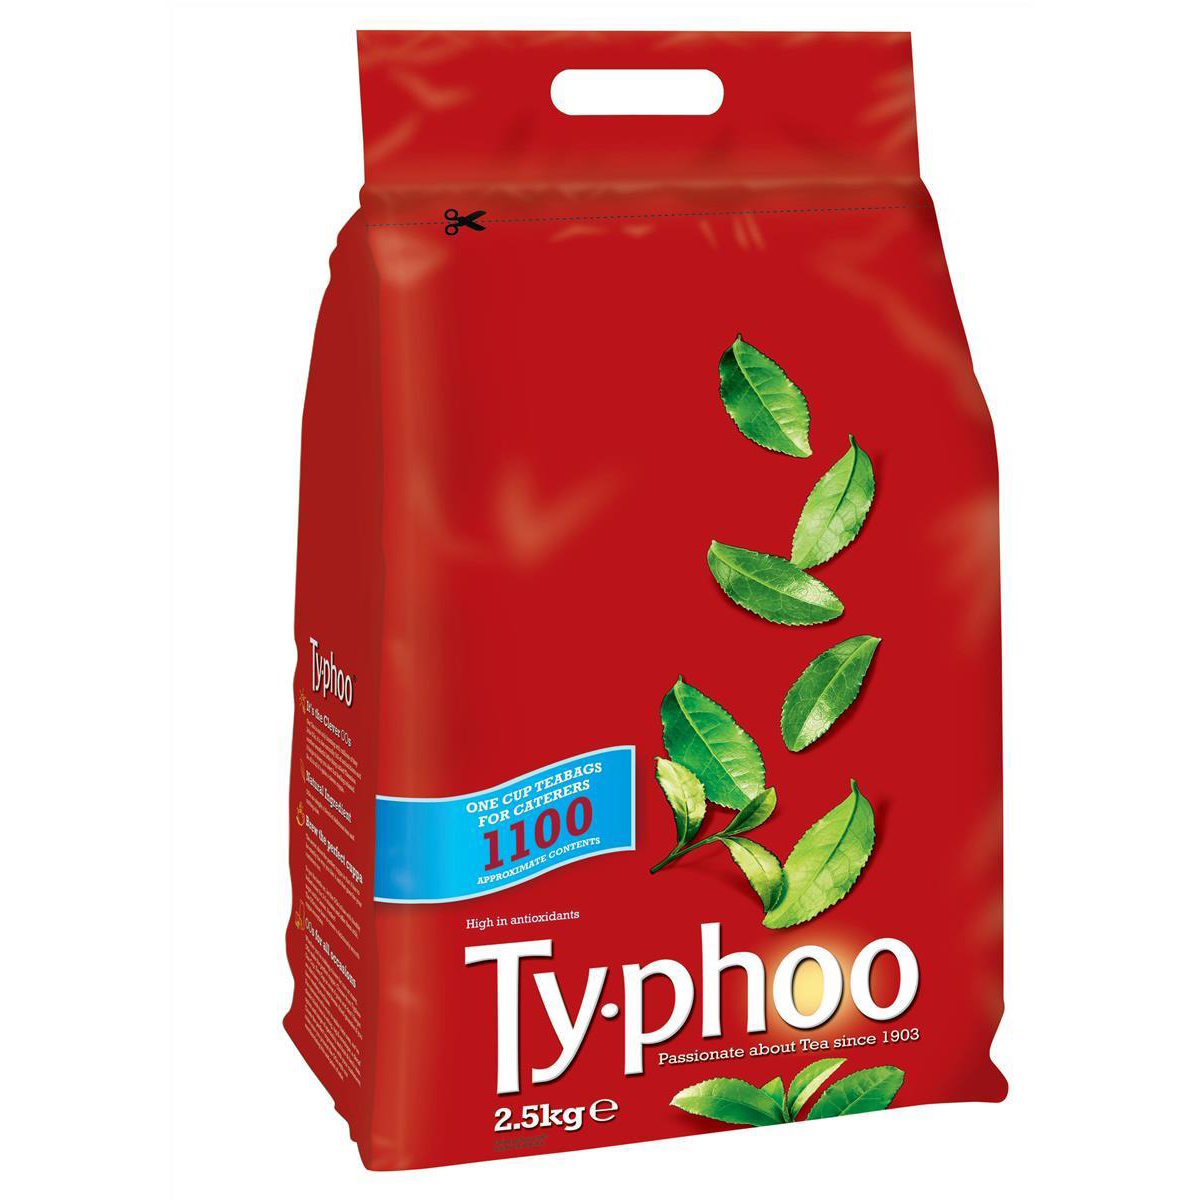 Tea Typhoo Tea Bags Vacuum-packed 1 Cup Ref A00786 Pack 1100